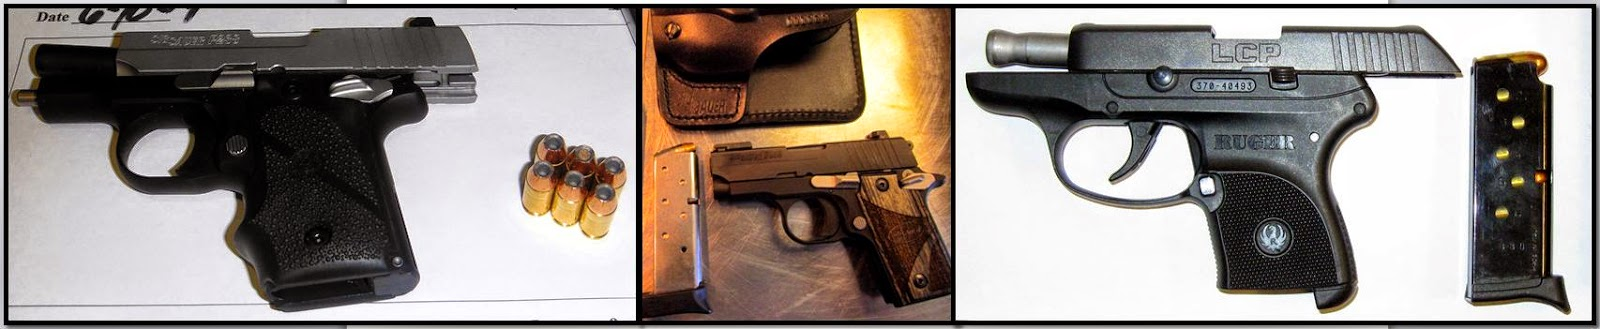 (L-R) Guns Discovered at IAH, SEA, OAJ